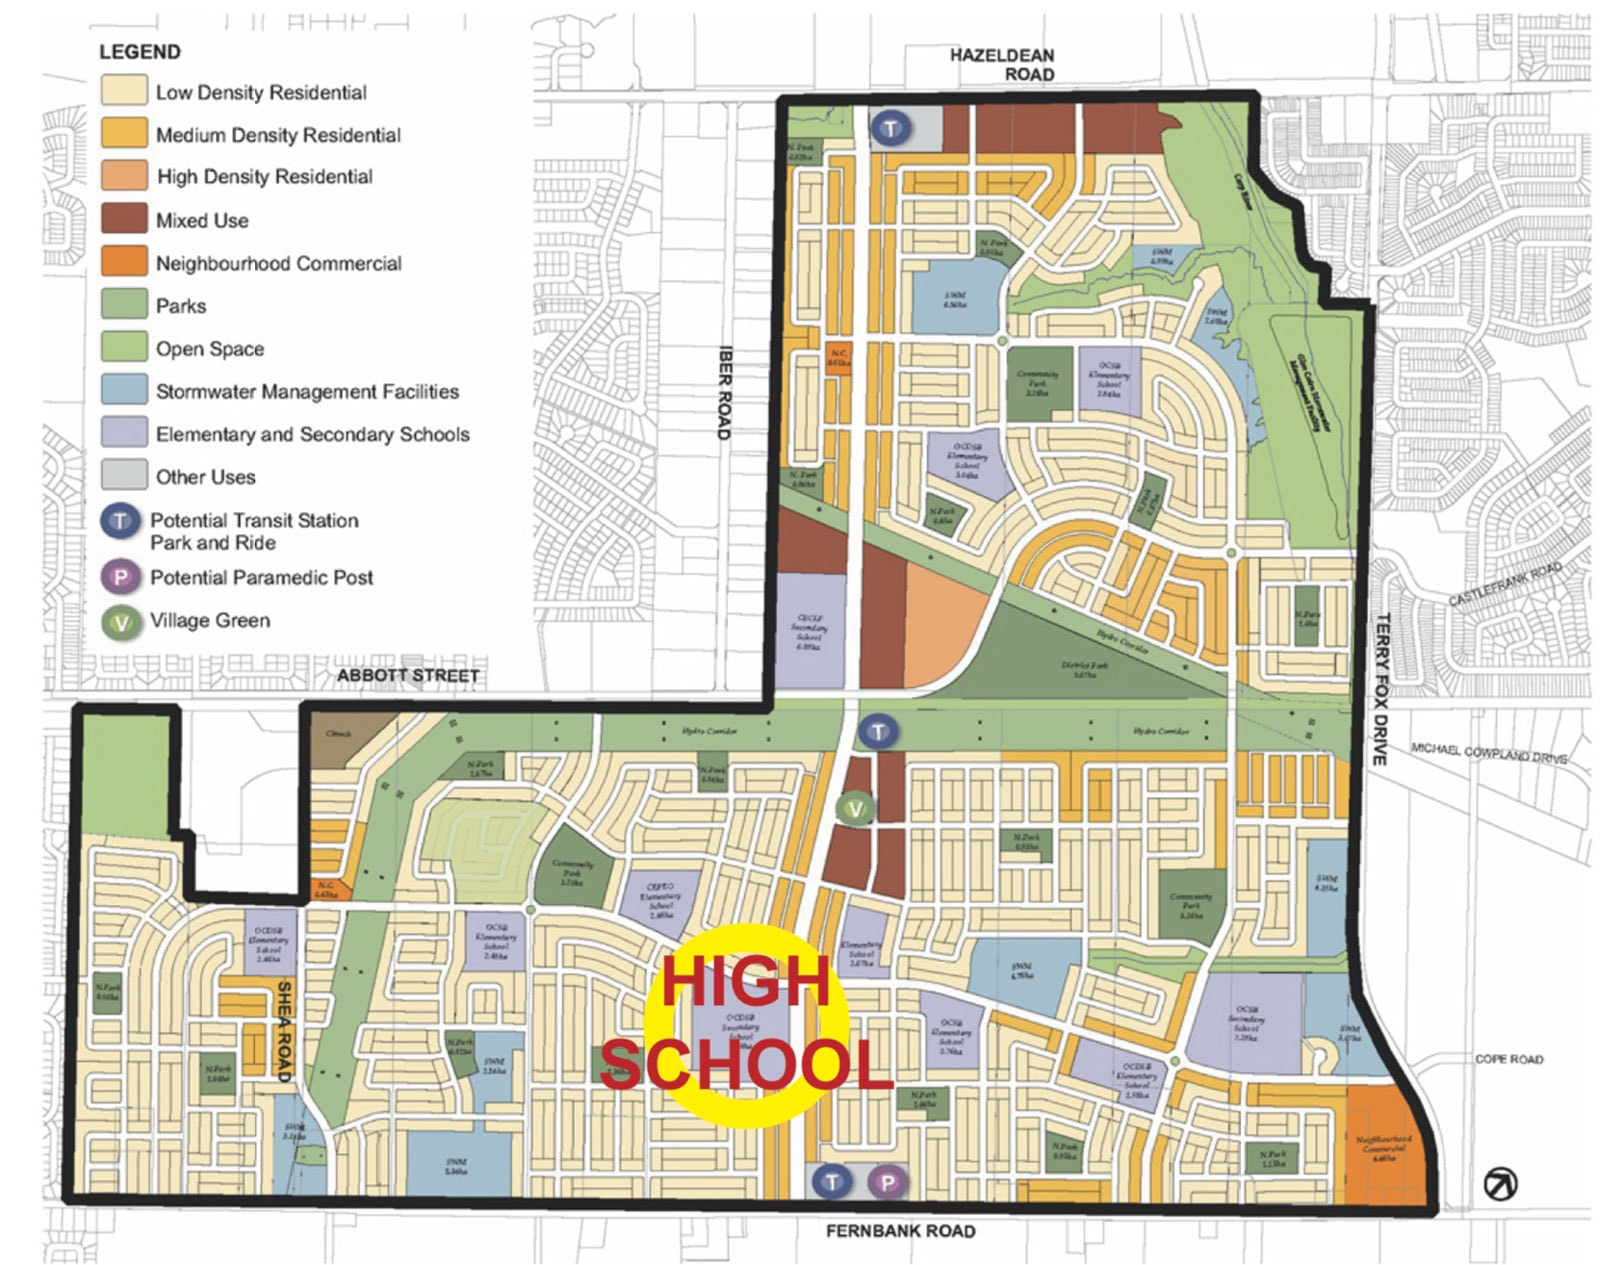 Location of the Public High School as shown in the Fernbank Community Design Plan from 2009.